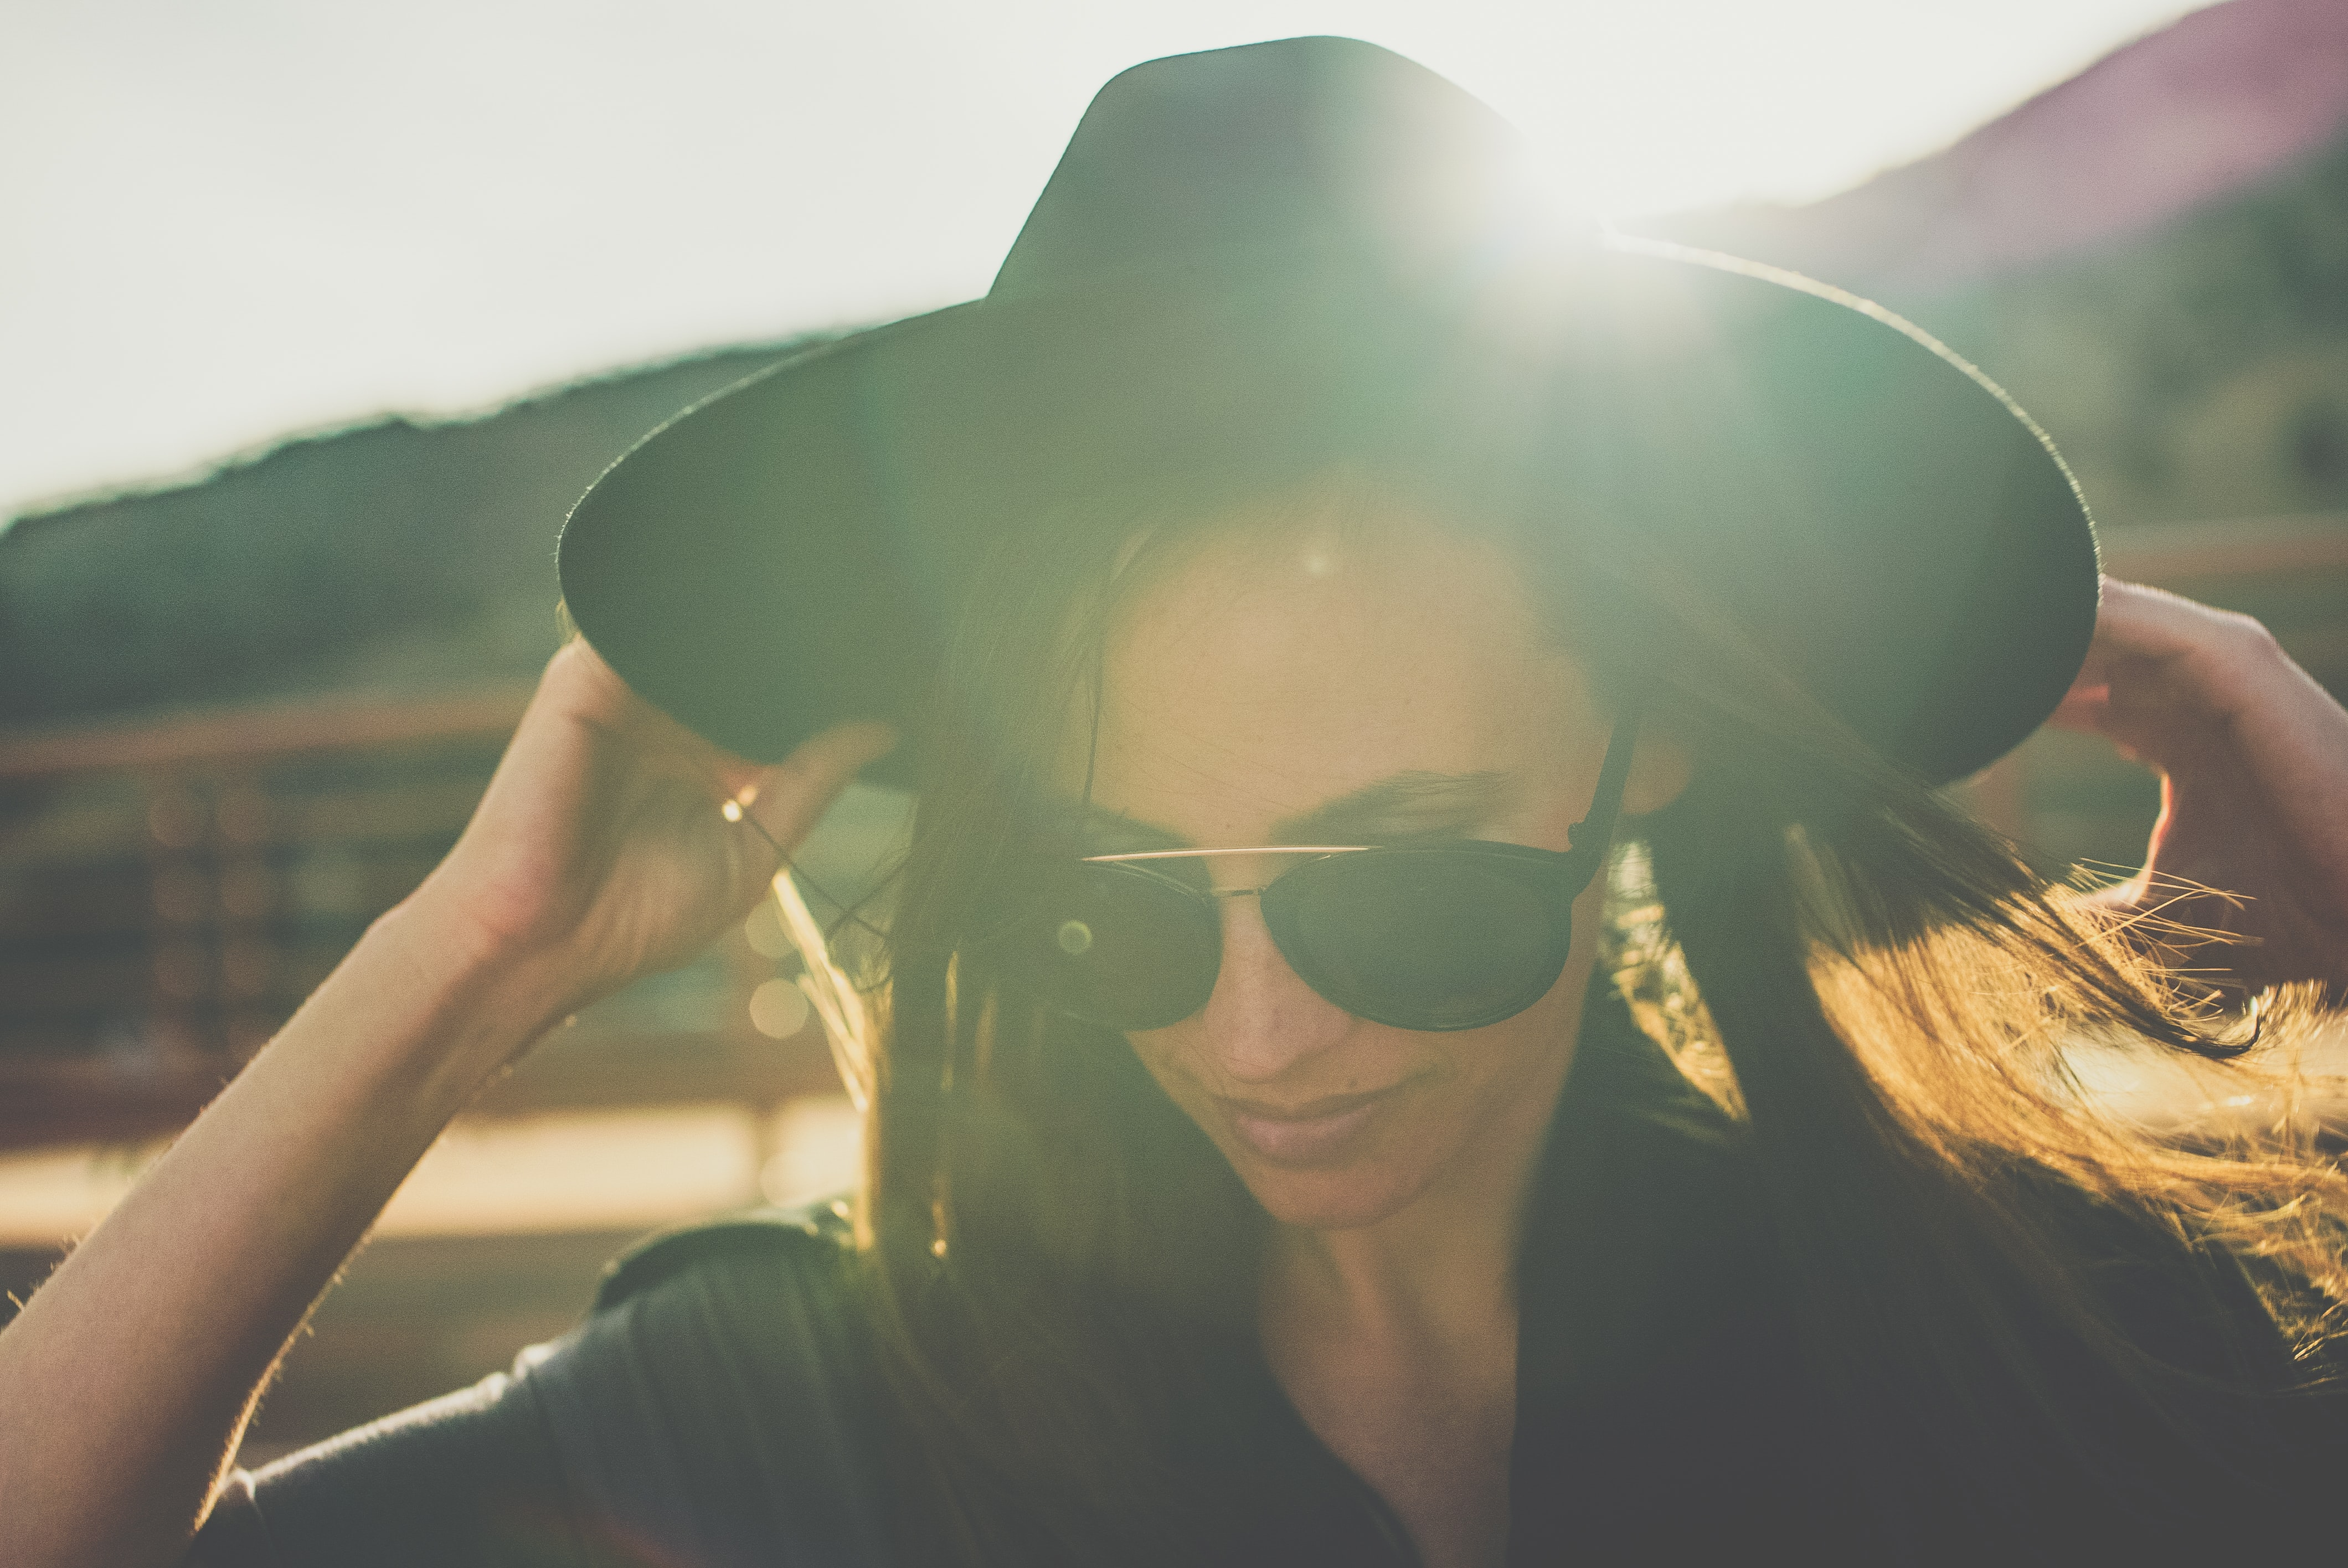 A woman in sunglasses holds the brim of her black hat, with sunlight shining behind her